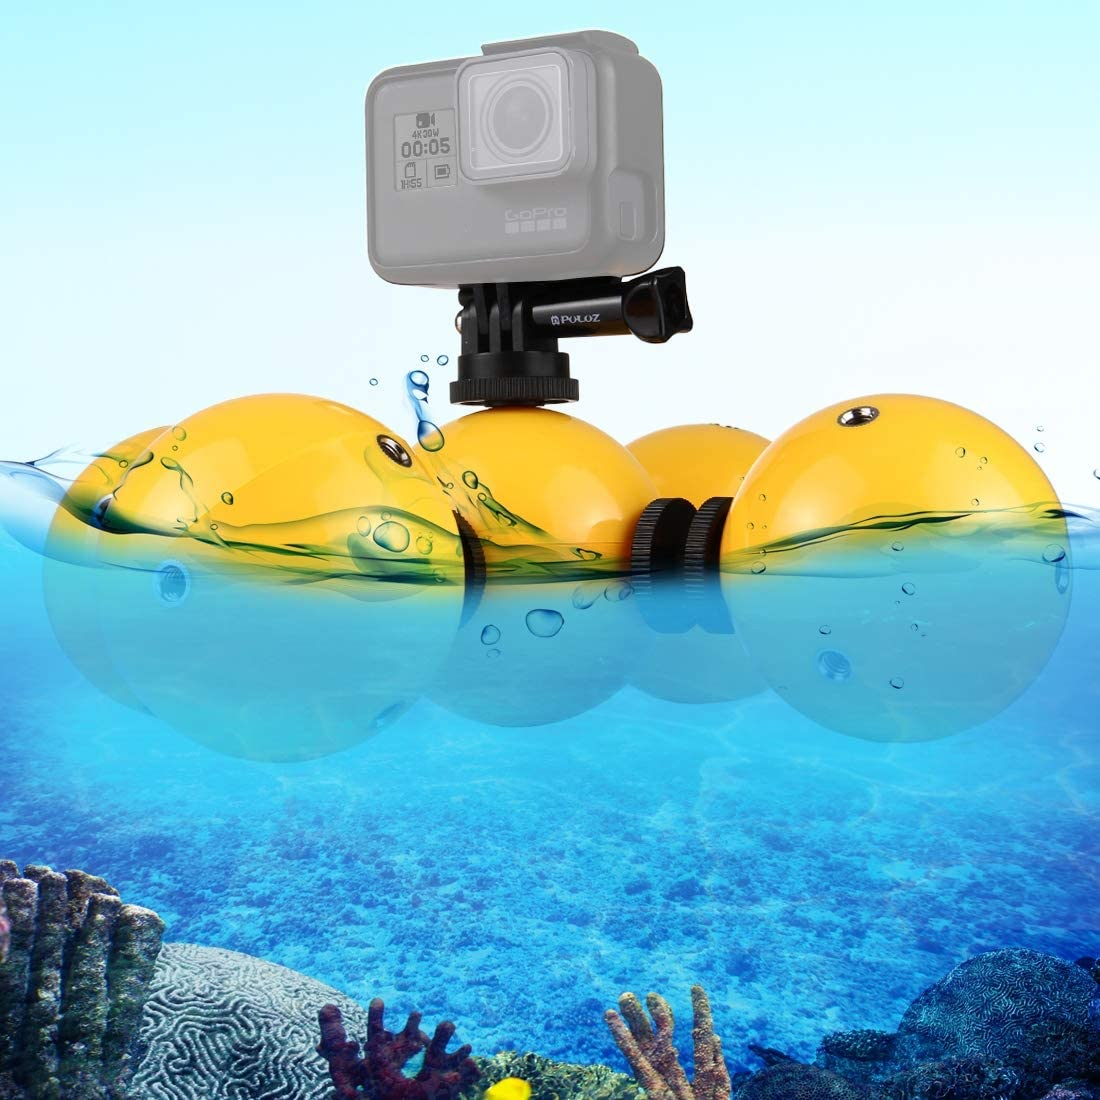 5 PCS Diving Floaty Bobber Ball with Safety Wrist Strap /& 4 x Connection Mount /& Tripod Adapter /& Long Screw /& Wrench for GoPro HERO6 //5 //5 Session //4 Session //4 //3 Xiaoyi and Other Action //3 //2 //1